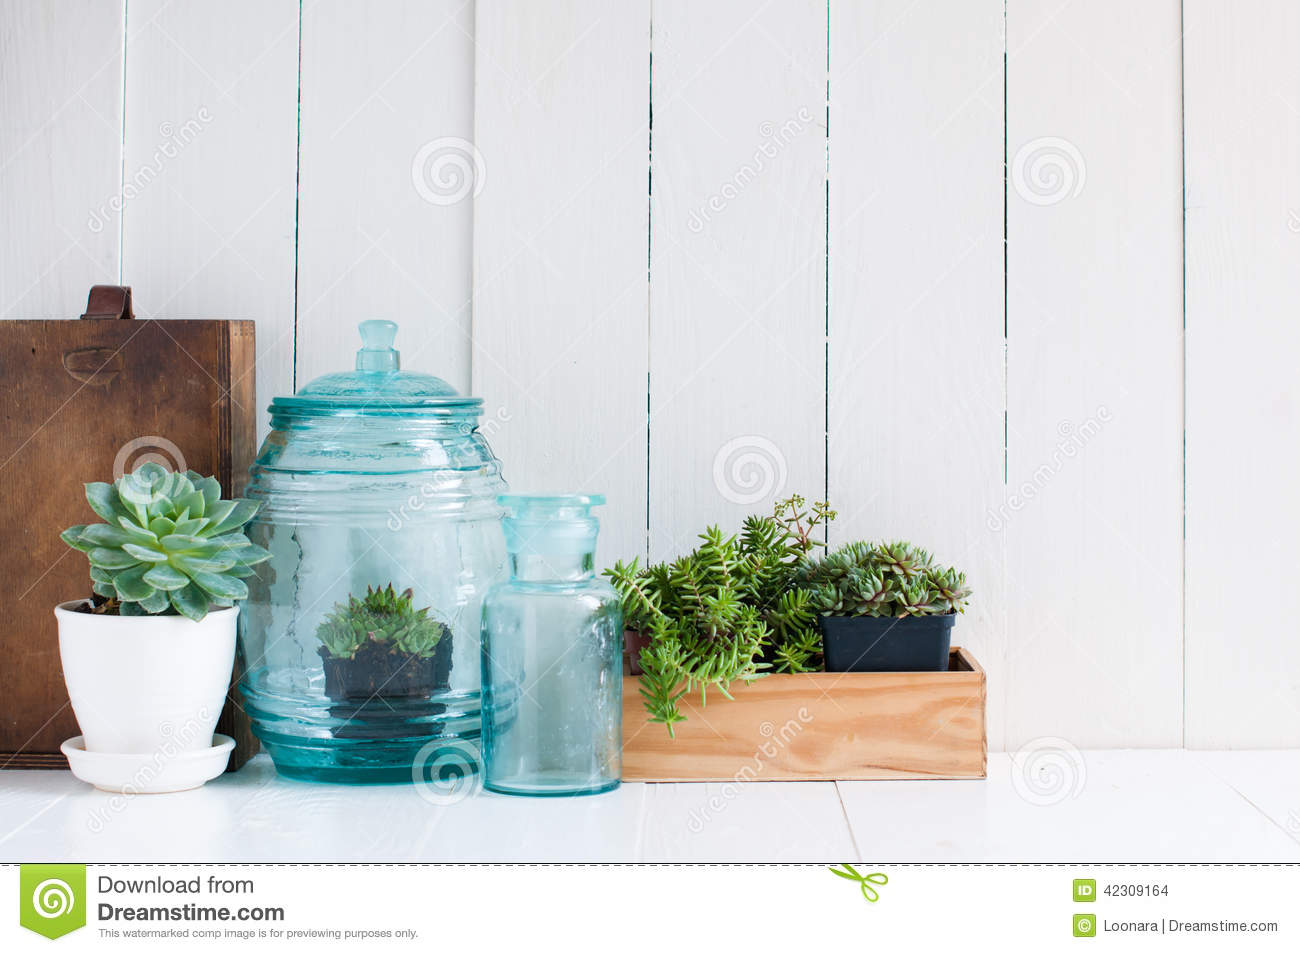 Vintage Home Decor Stock Photo Image Of Blue Background 42309164